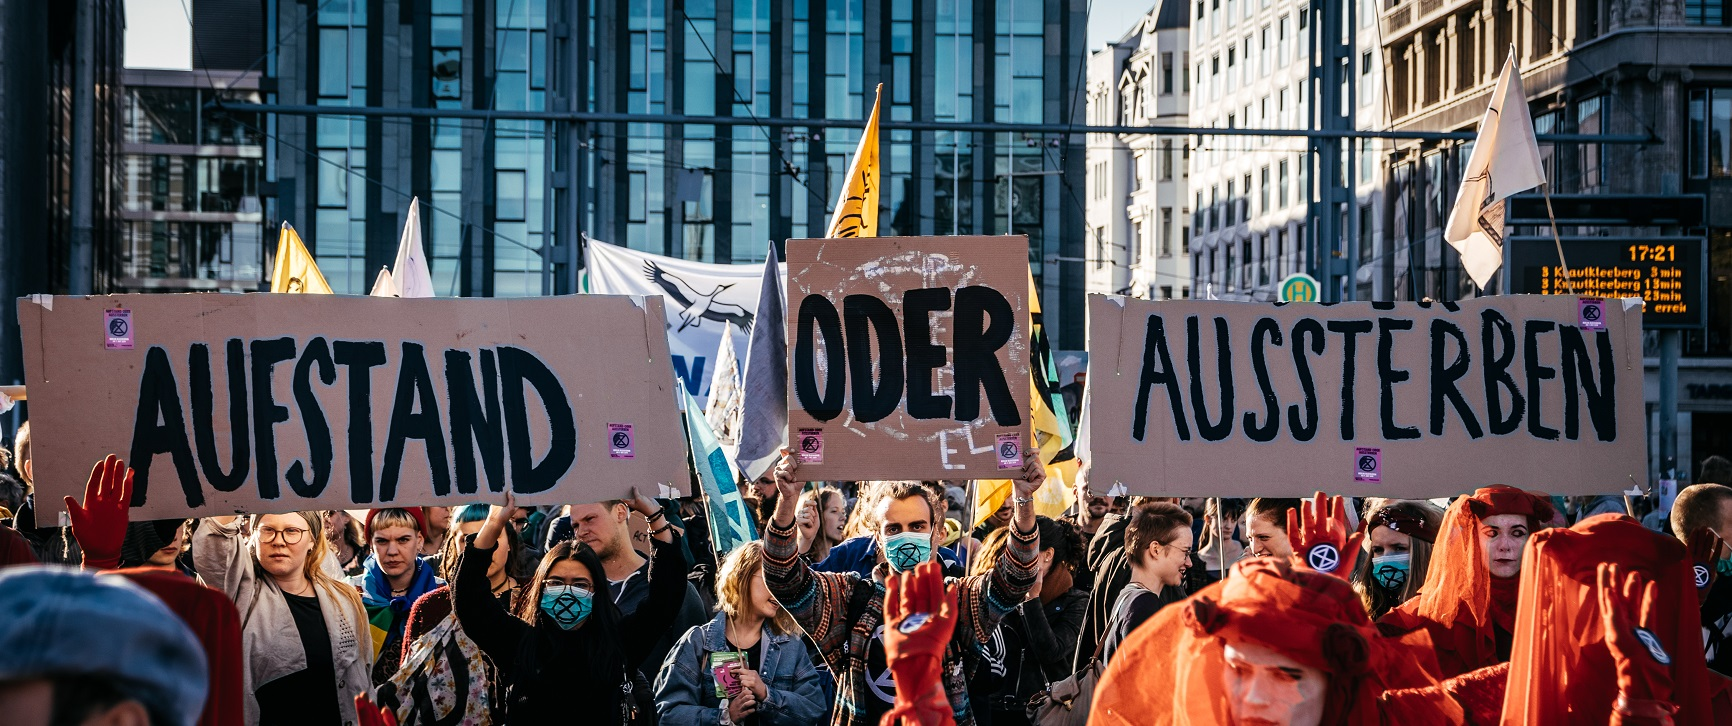 FFF am 20. September – eindeutig links und antikapitalistisch